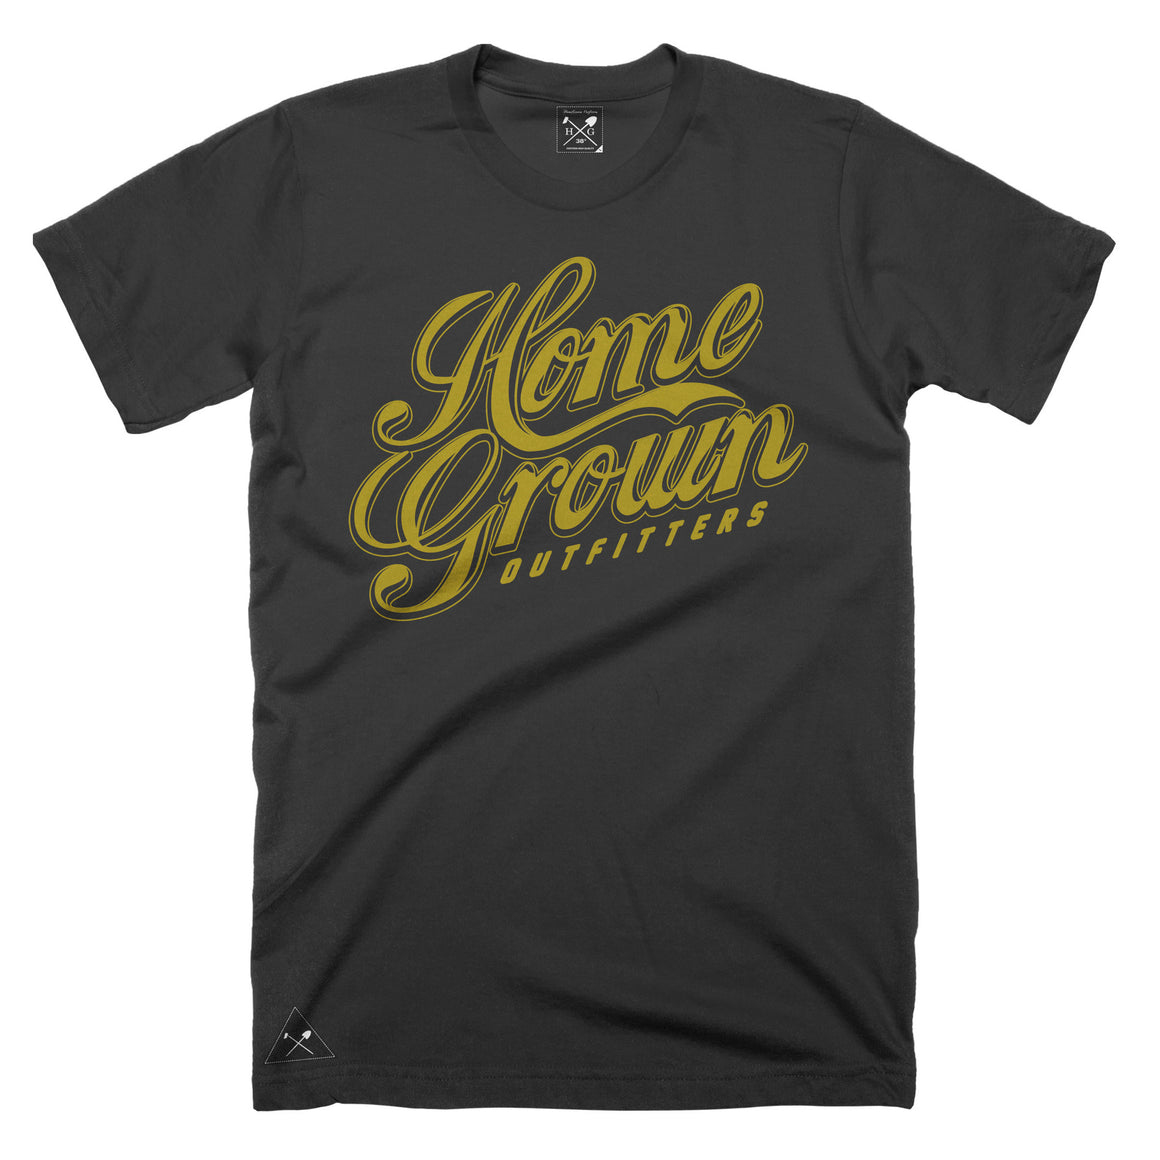 Gold Rush script t-shirt - Black